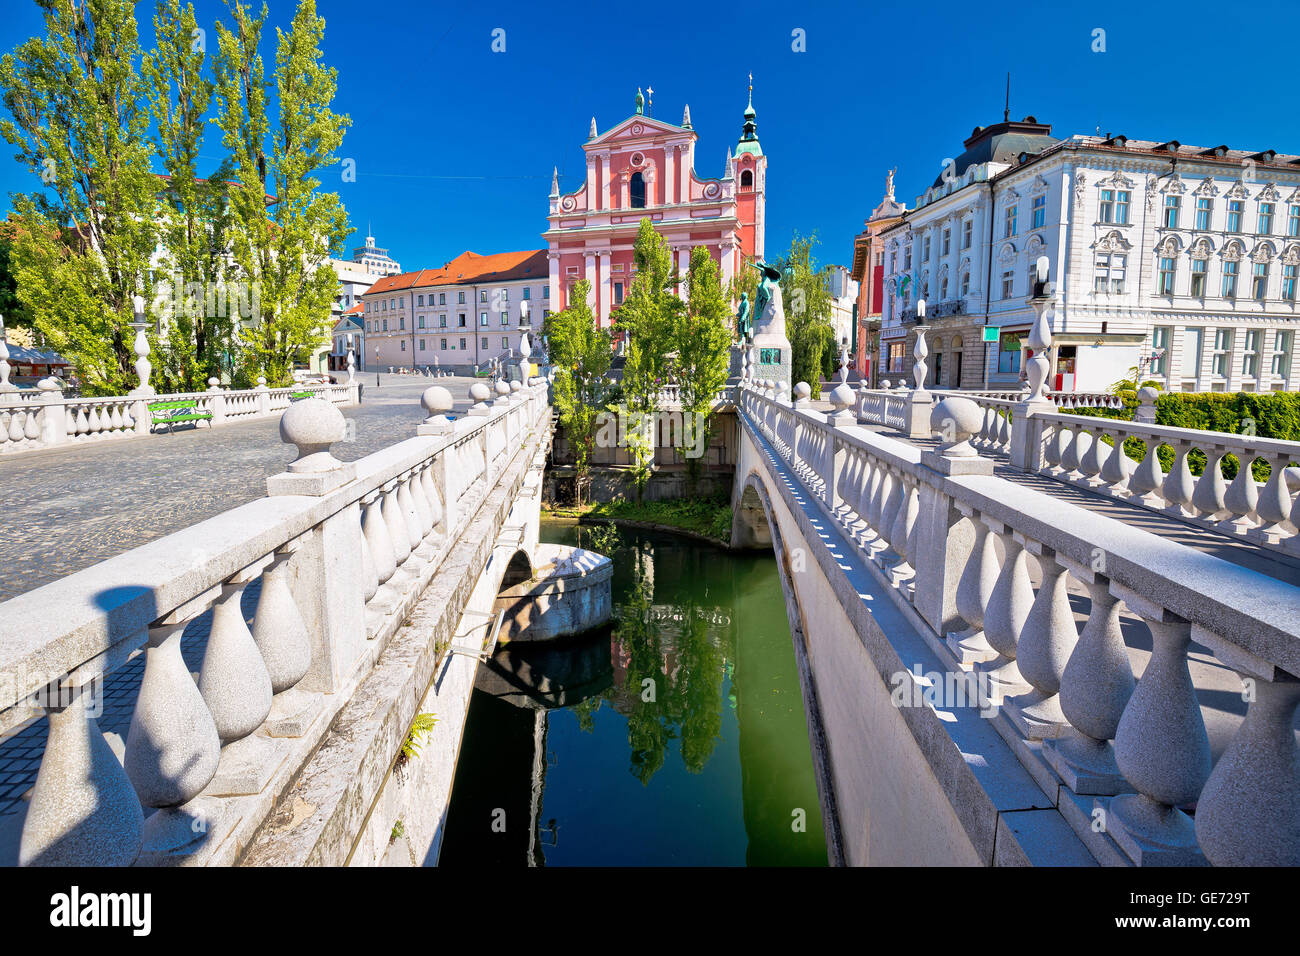 Tromostovje square and bridges of Ljubljana, capital of Slovenia - Stock Image